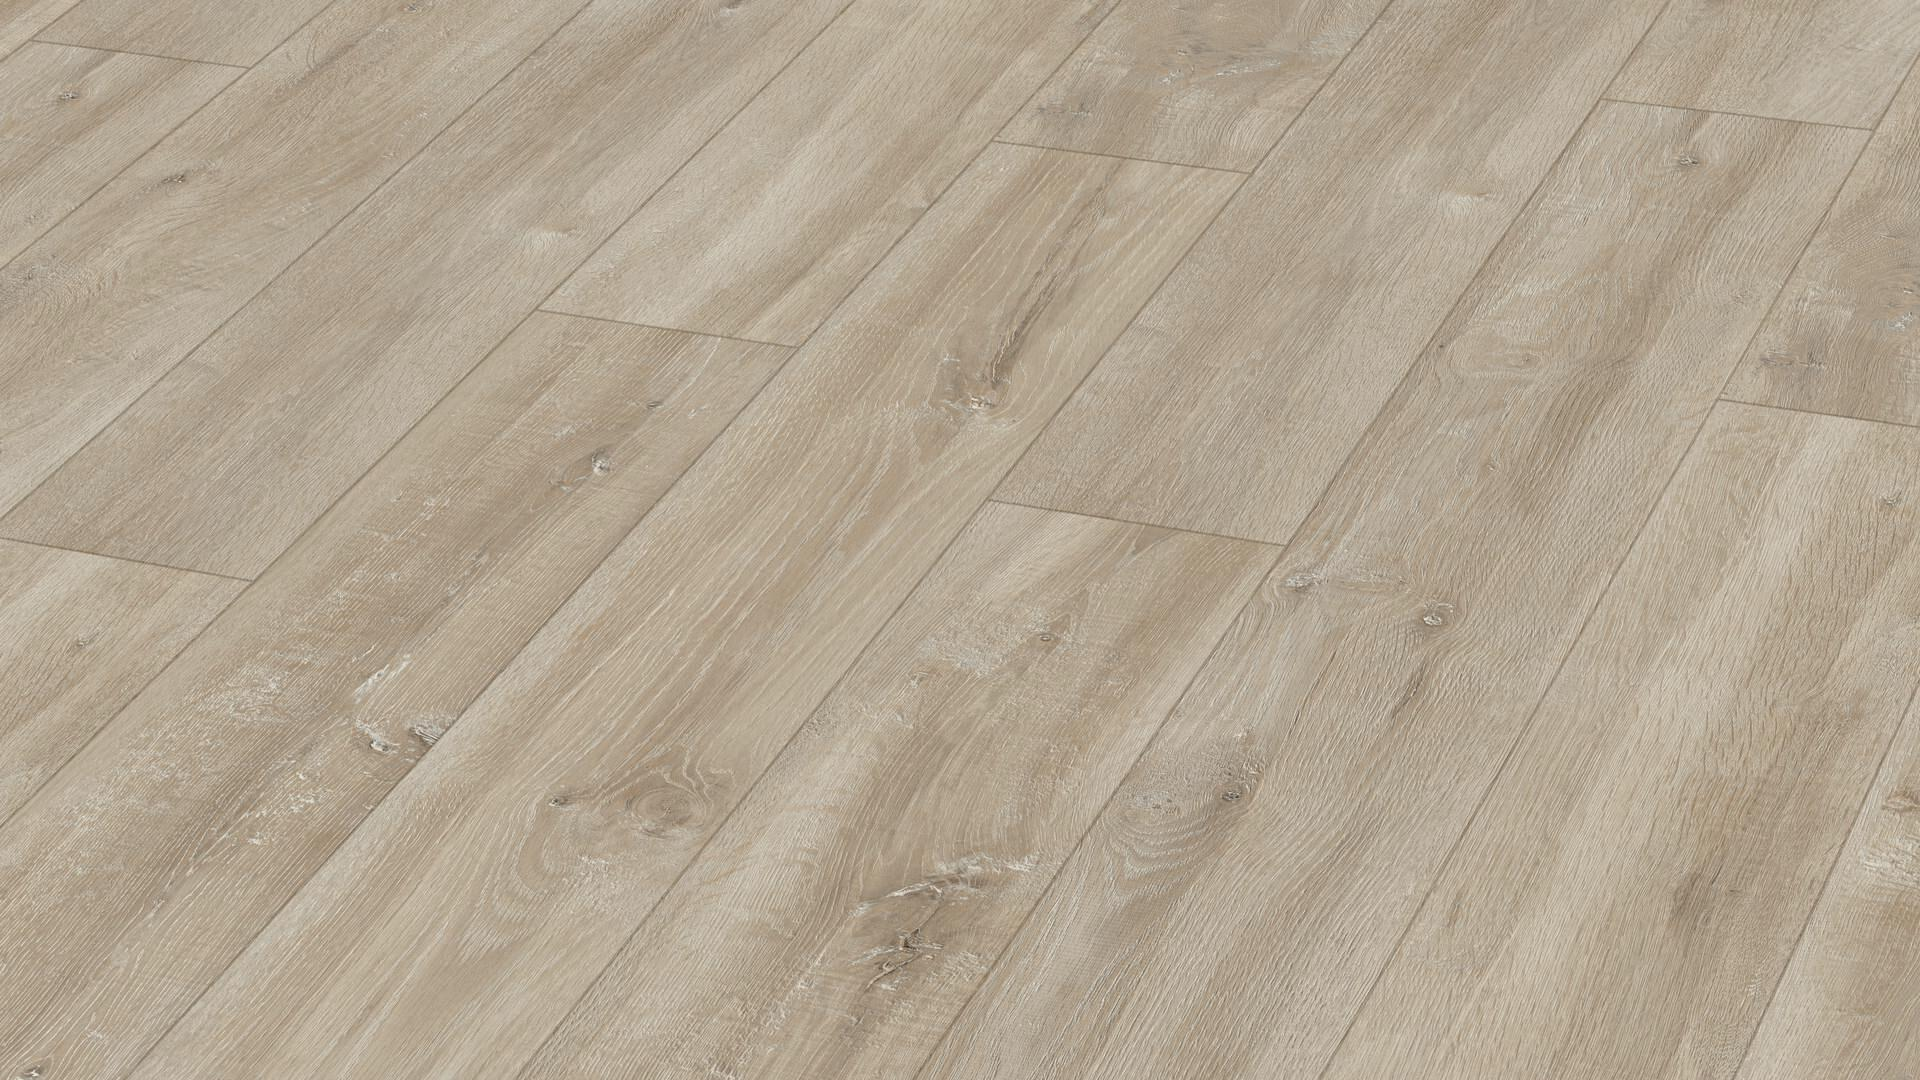 Laminate flooring MeisterDesign. laminate LD 55 Cabana wood 6681